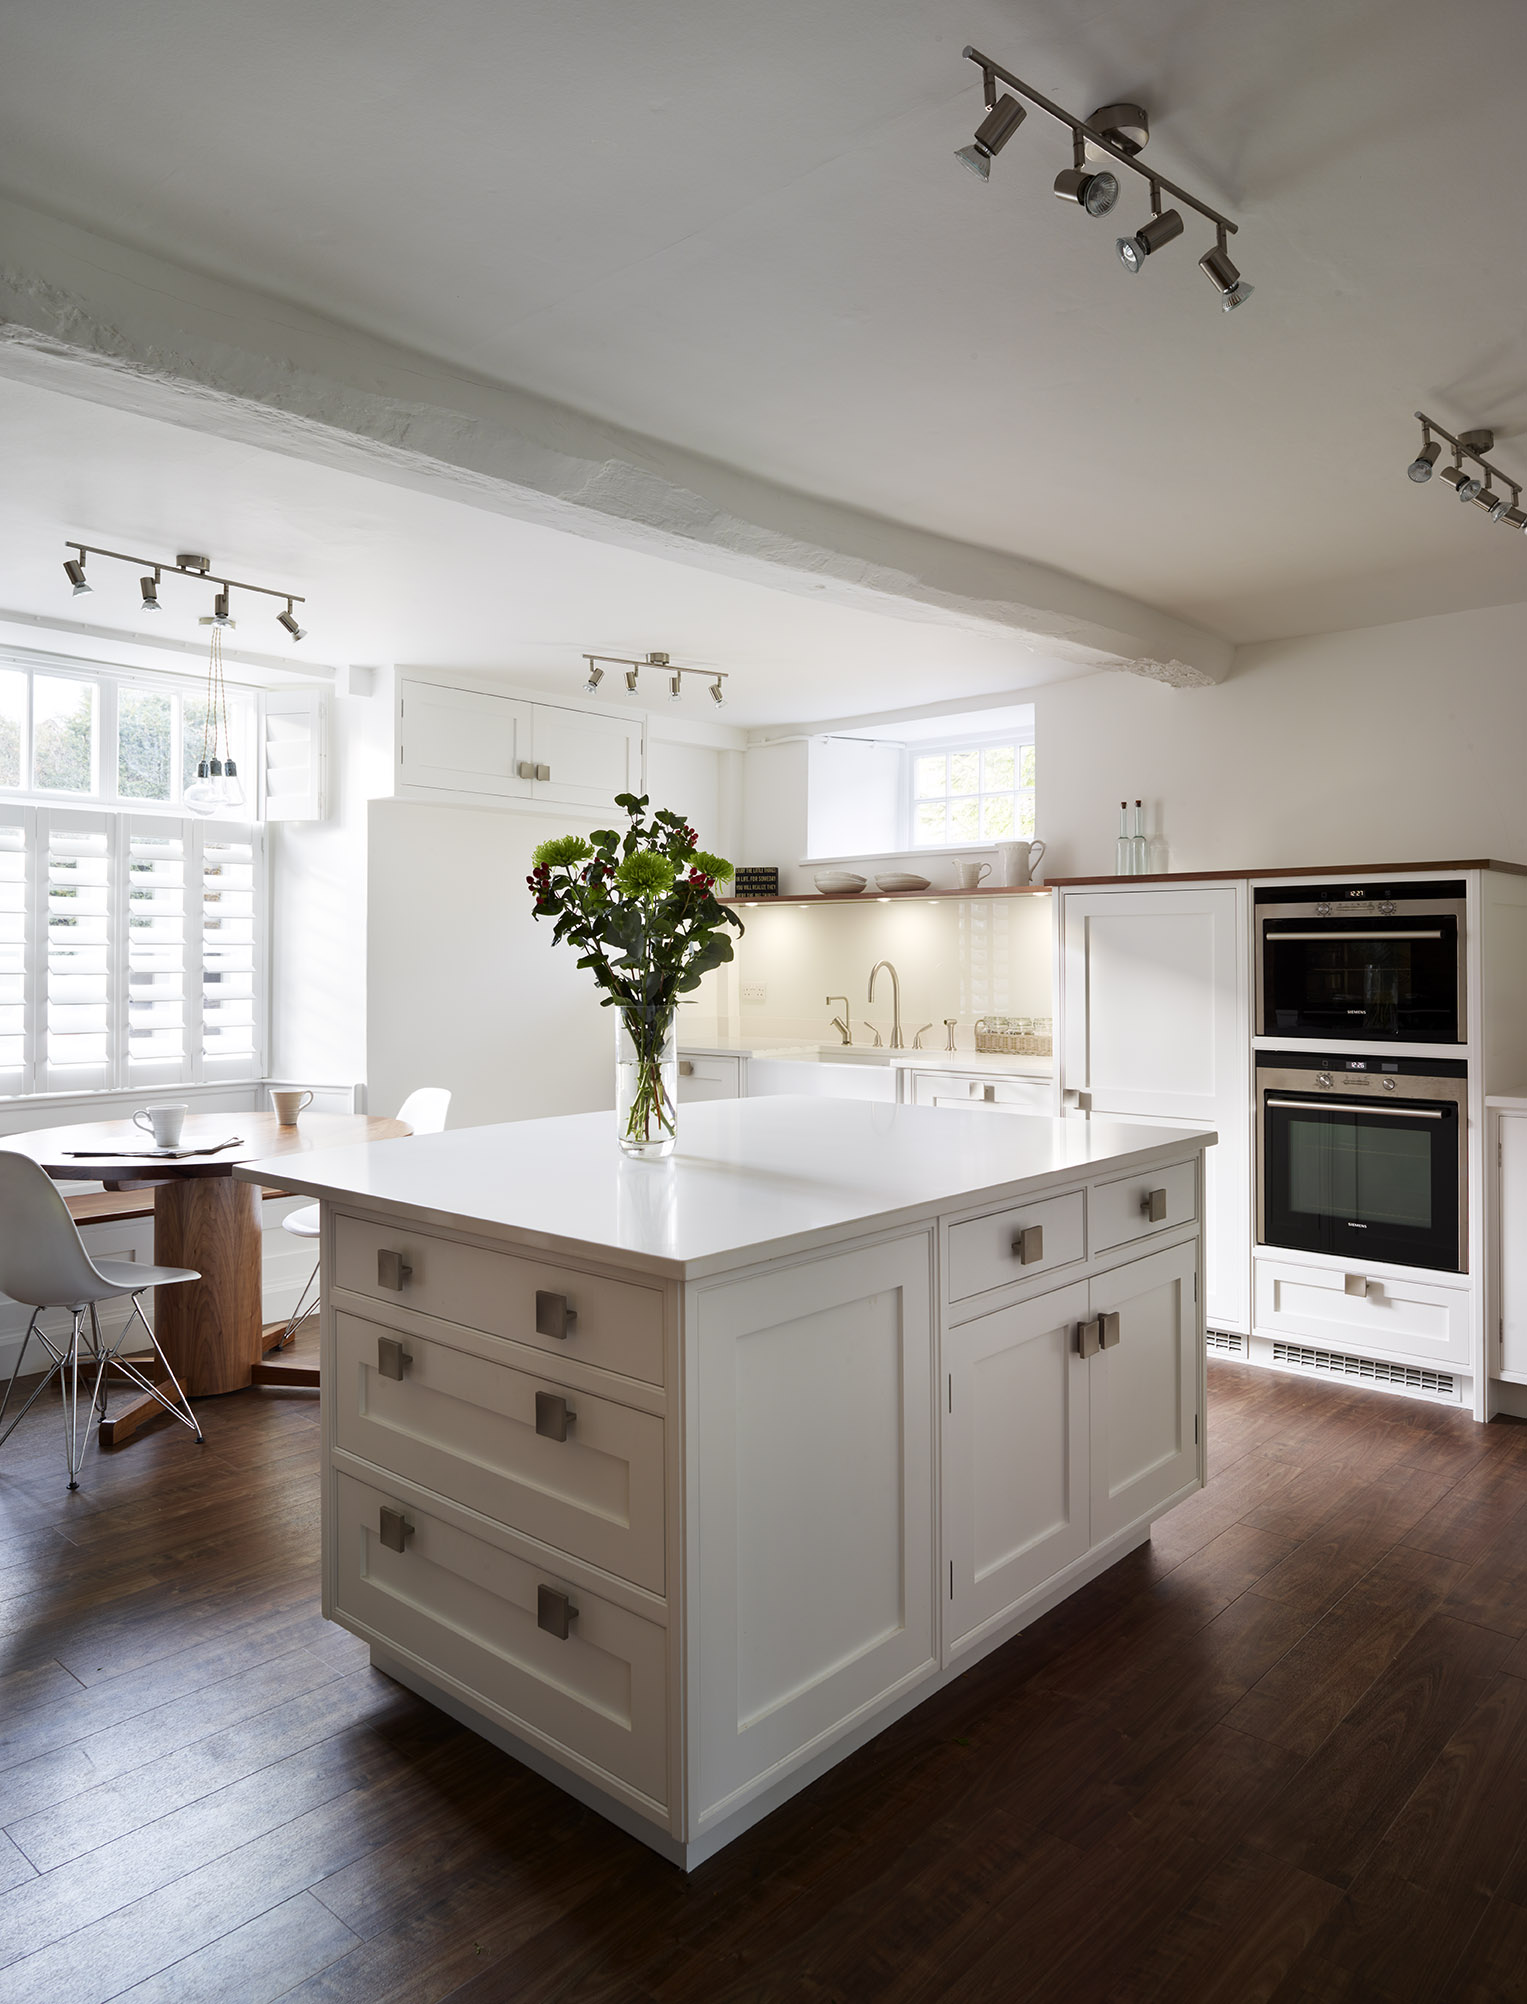 Stoke Goldington - Light kitchen island with contrasting wooden flooring